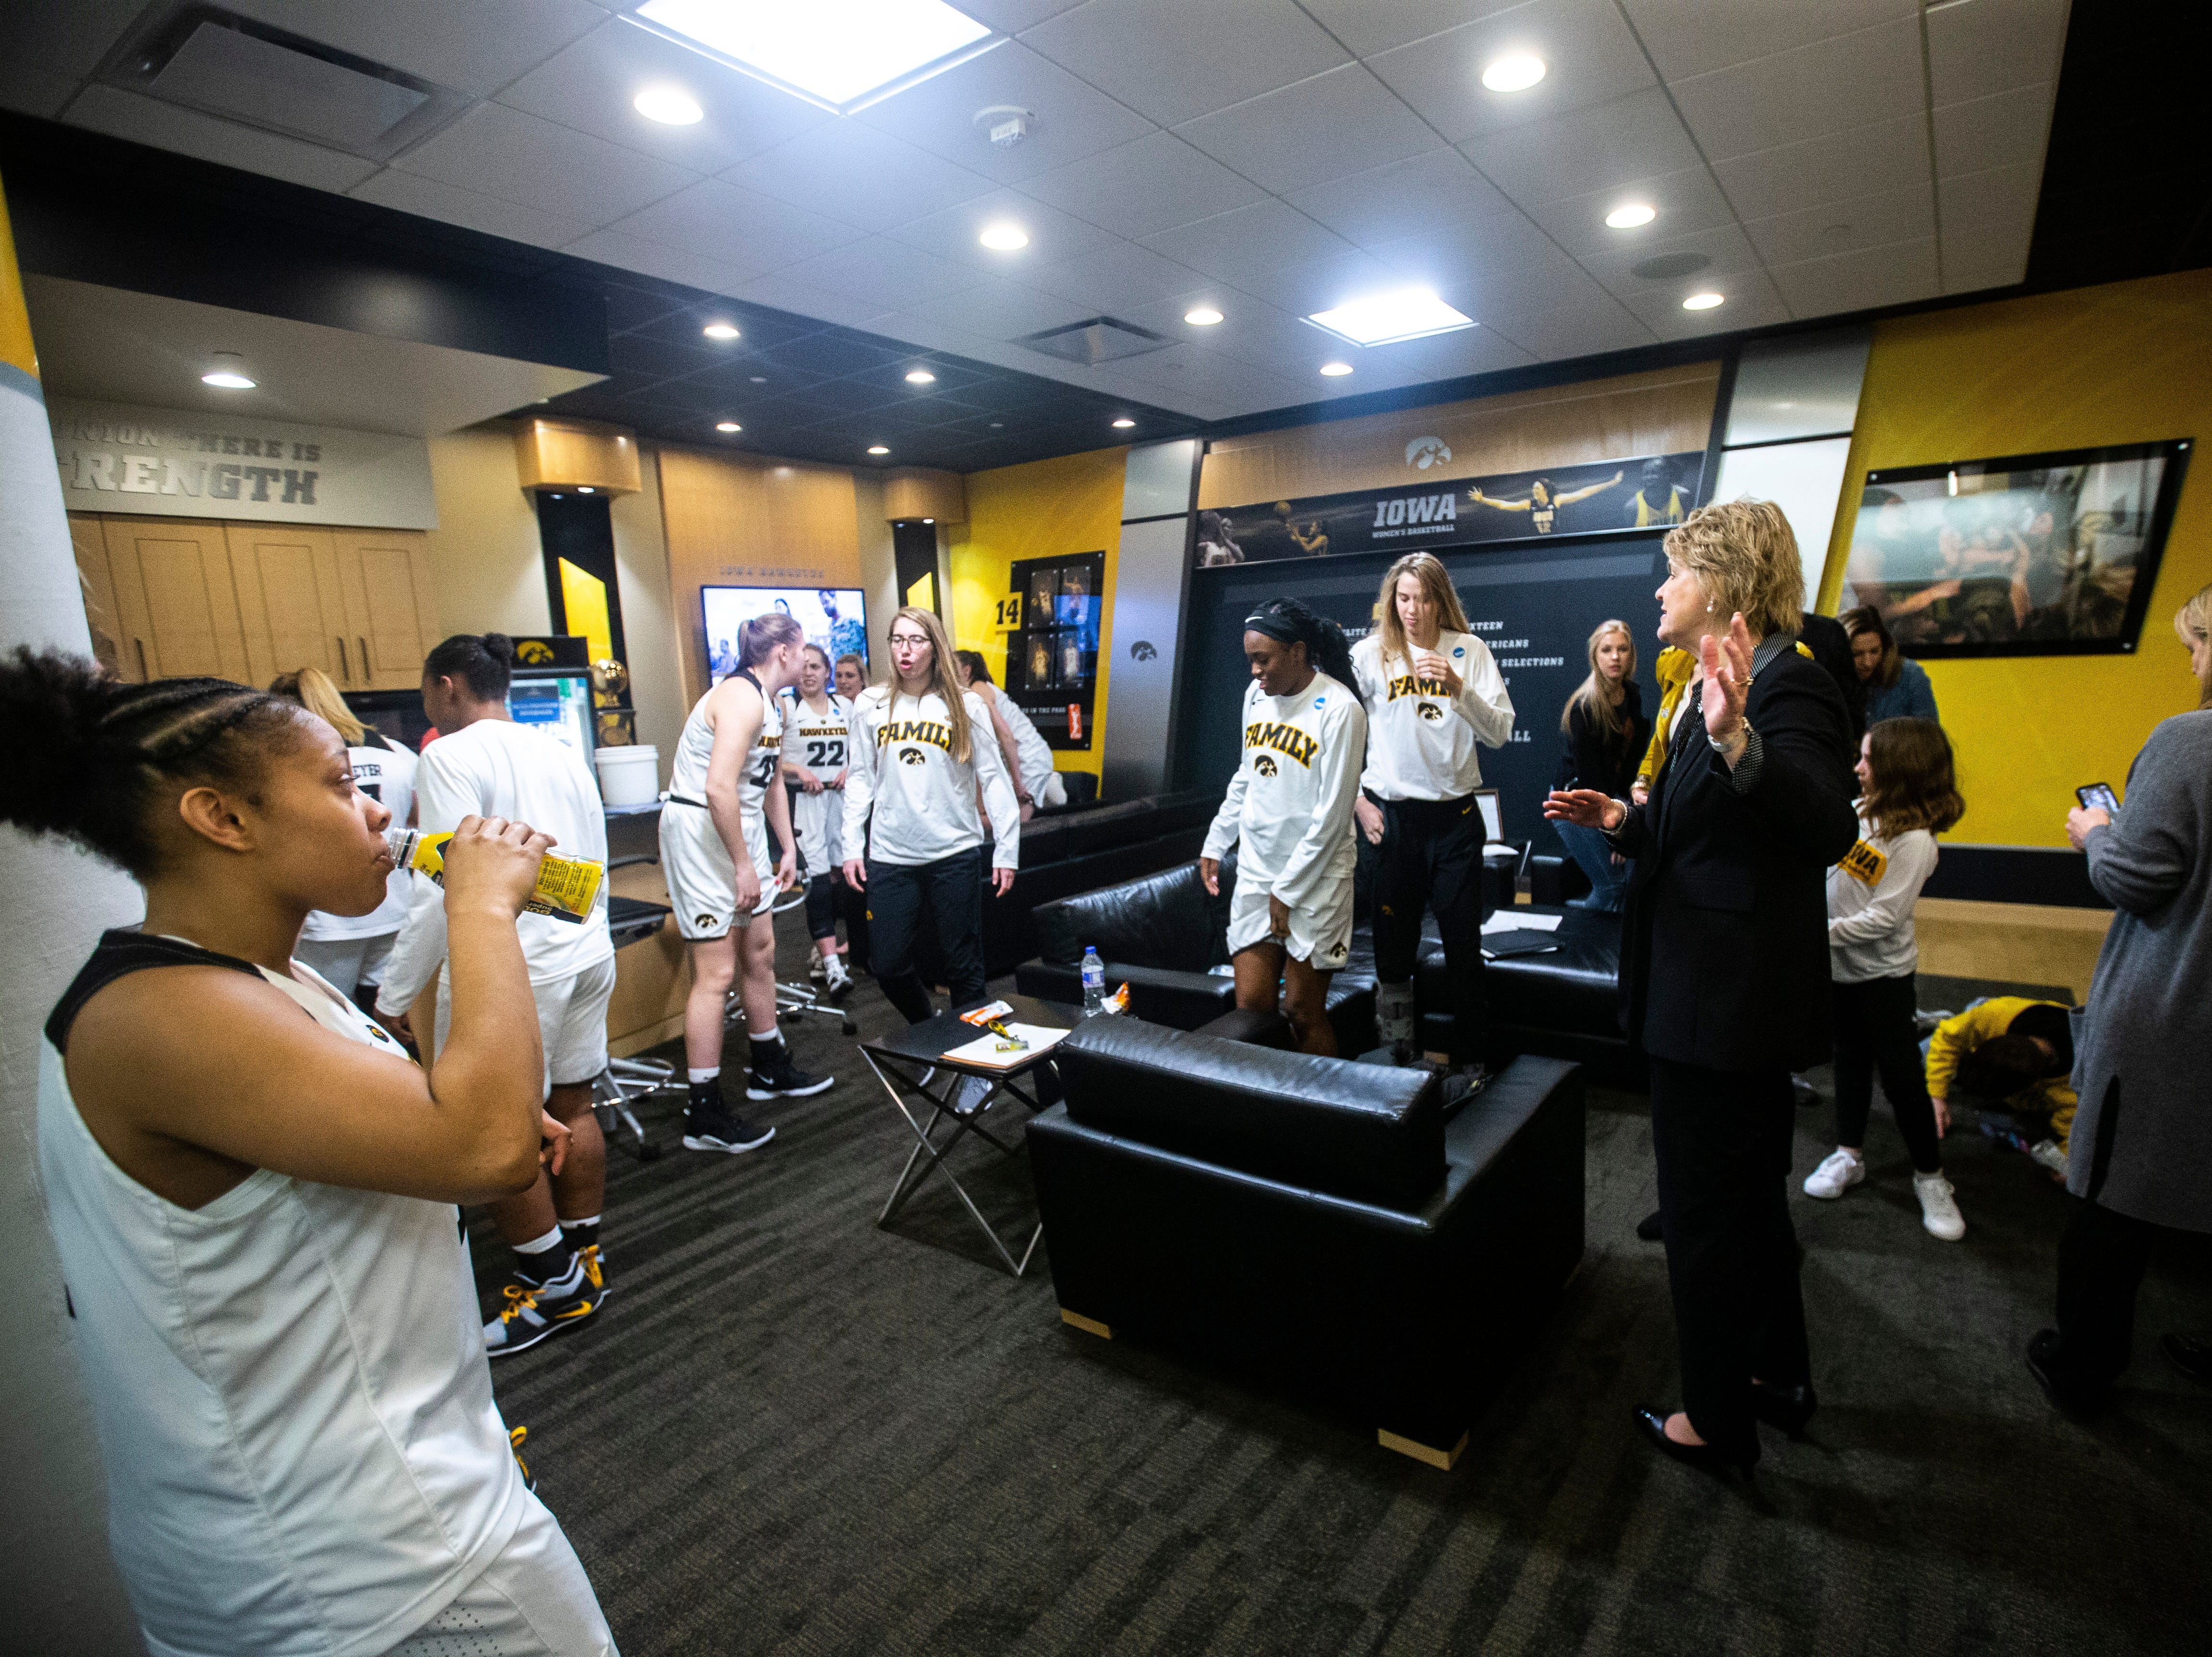 Iowa center Megan Gustafson (10) talks to players before cutting down the nets on the court after a NCAA women's basketball tournament second-round game, Sunday, March 24, 2019, at Carver-Hawkeye Arena in Iowa City, Iowa.